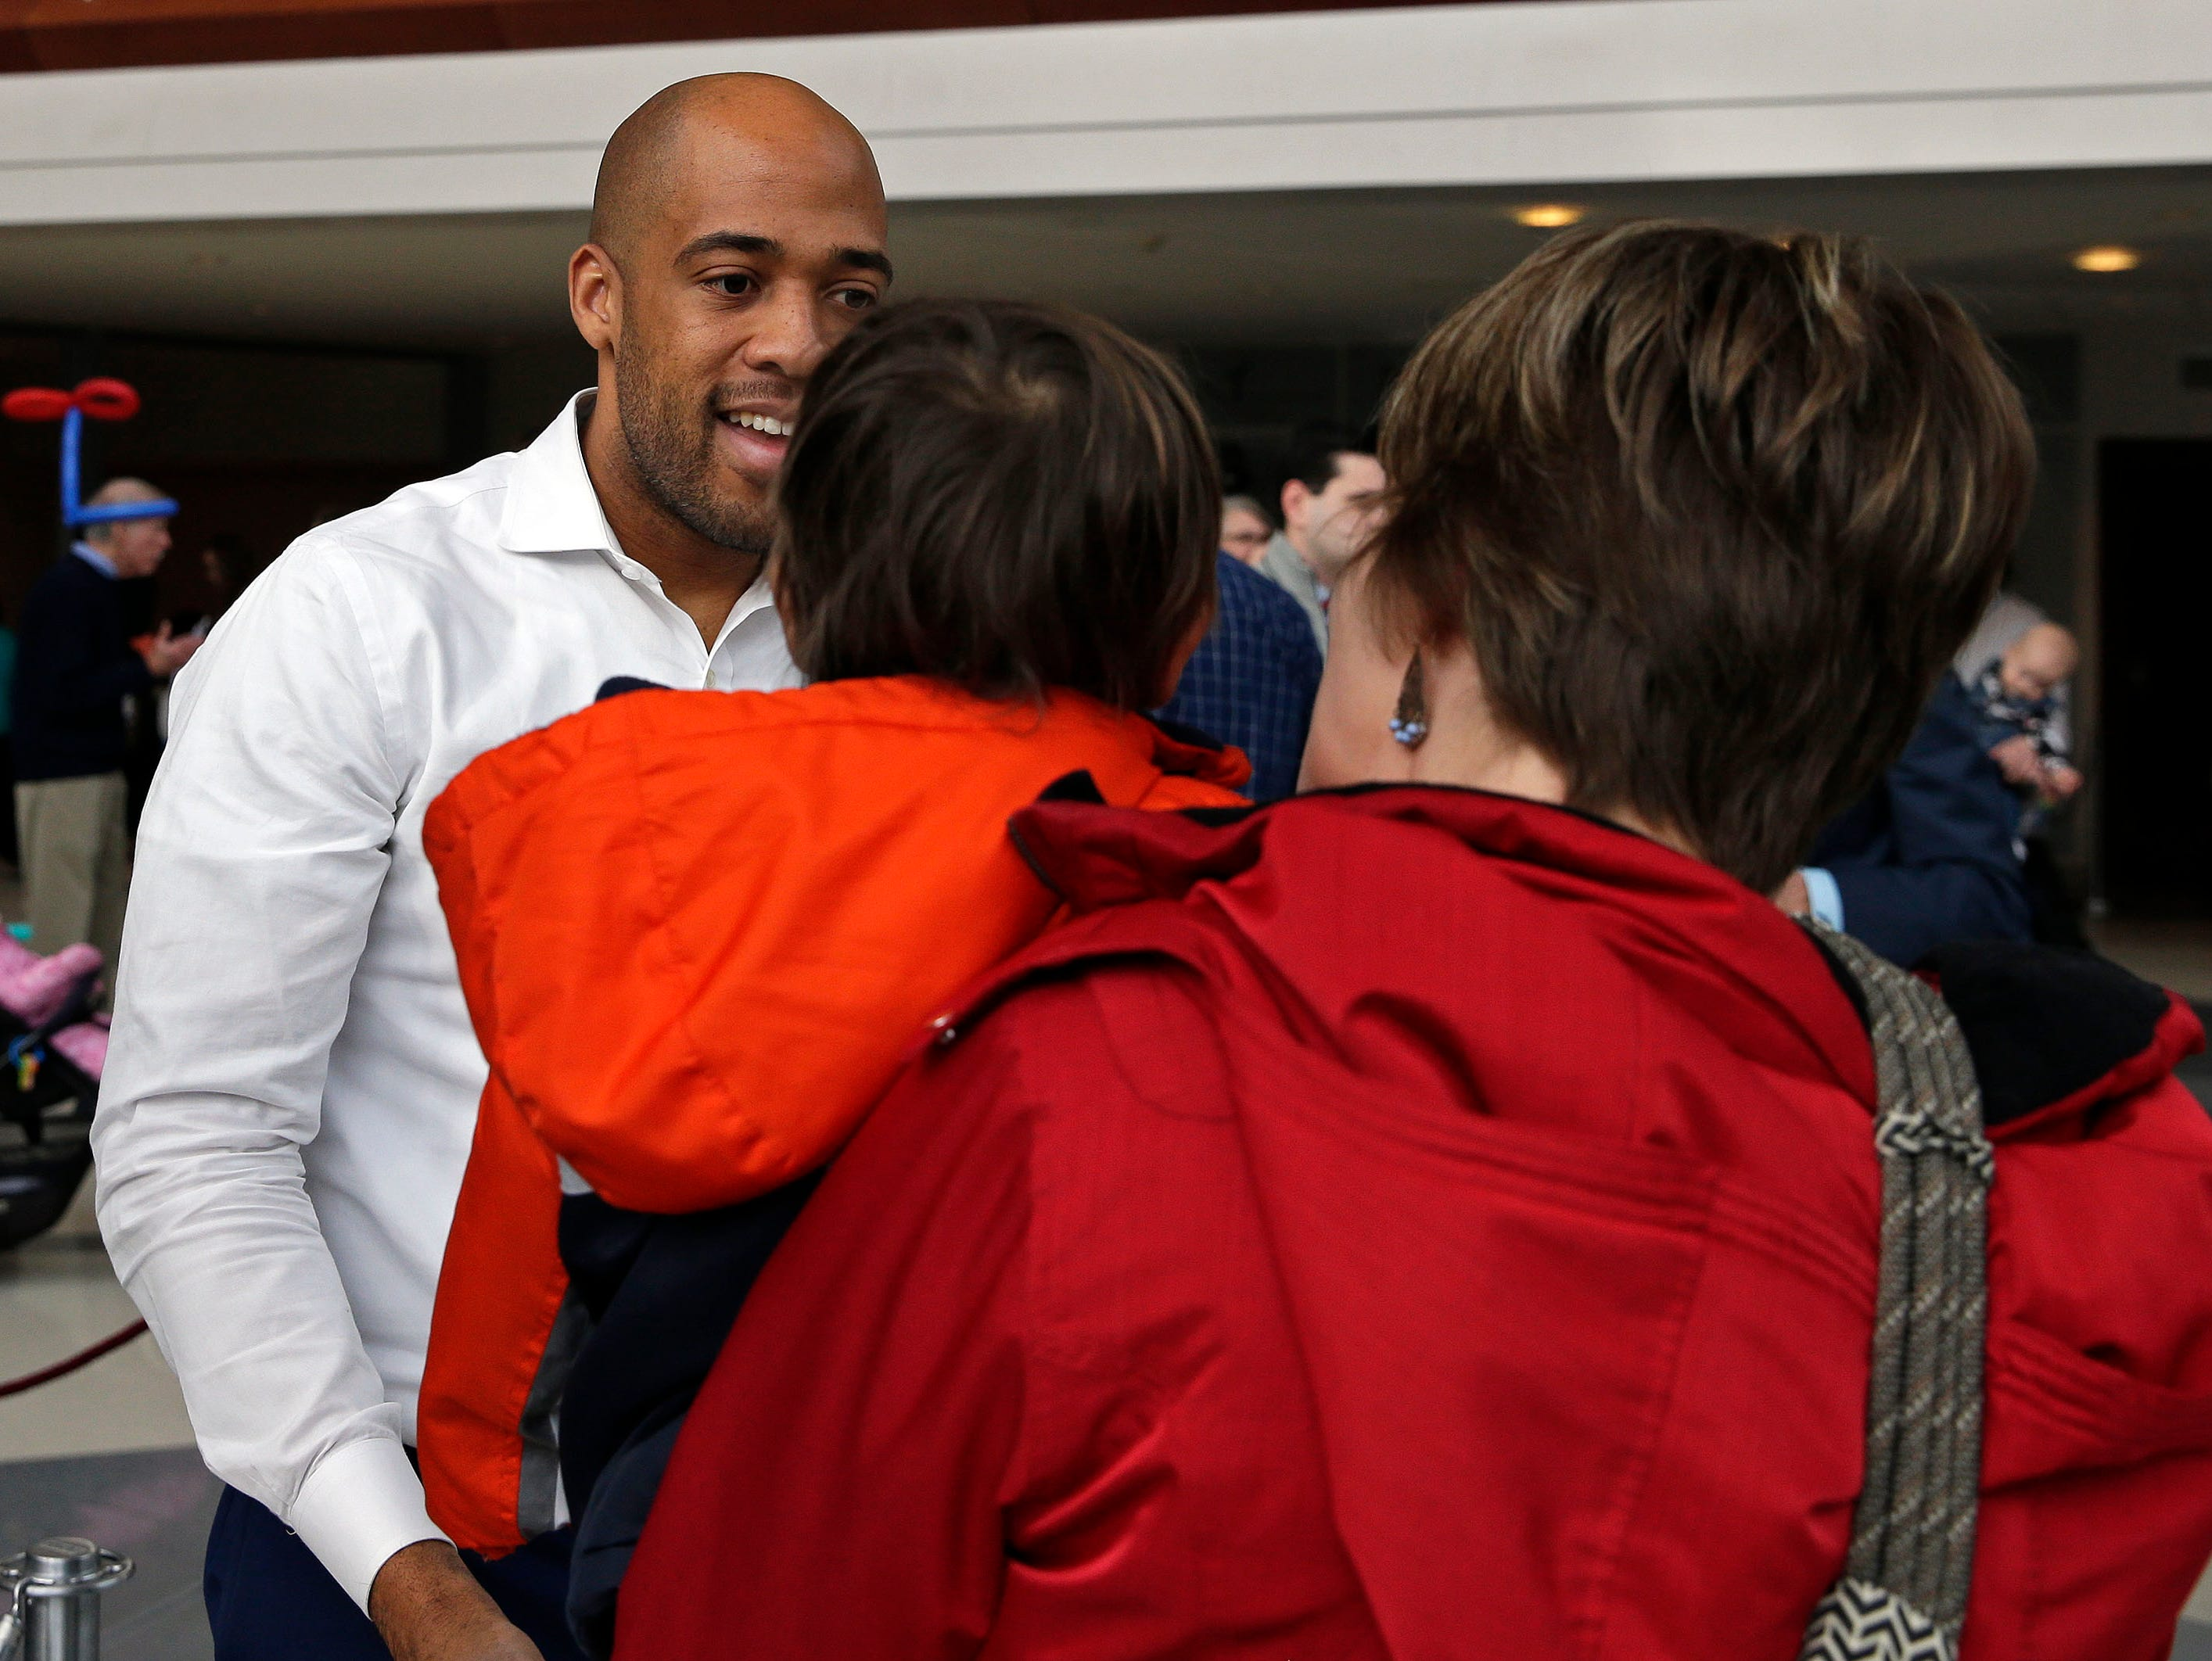 Lieutenant Governor-elect Mandela Barnes speaks with Karin and Daniel Alvarez of Appleton during the Inaugural Appleton Kids Gala Sunday, January 6, 2019, at the Fox Cities Performing Arts Center in Appleton, Wis. Barnes and Governor-elect Tony Evers spoke then posed for photos. The gala was one of three over the weekend. Events were held in Madison and Milwaukee on Saturday.Ron Page/USA TODAY NETWORK-Wisconsin